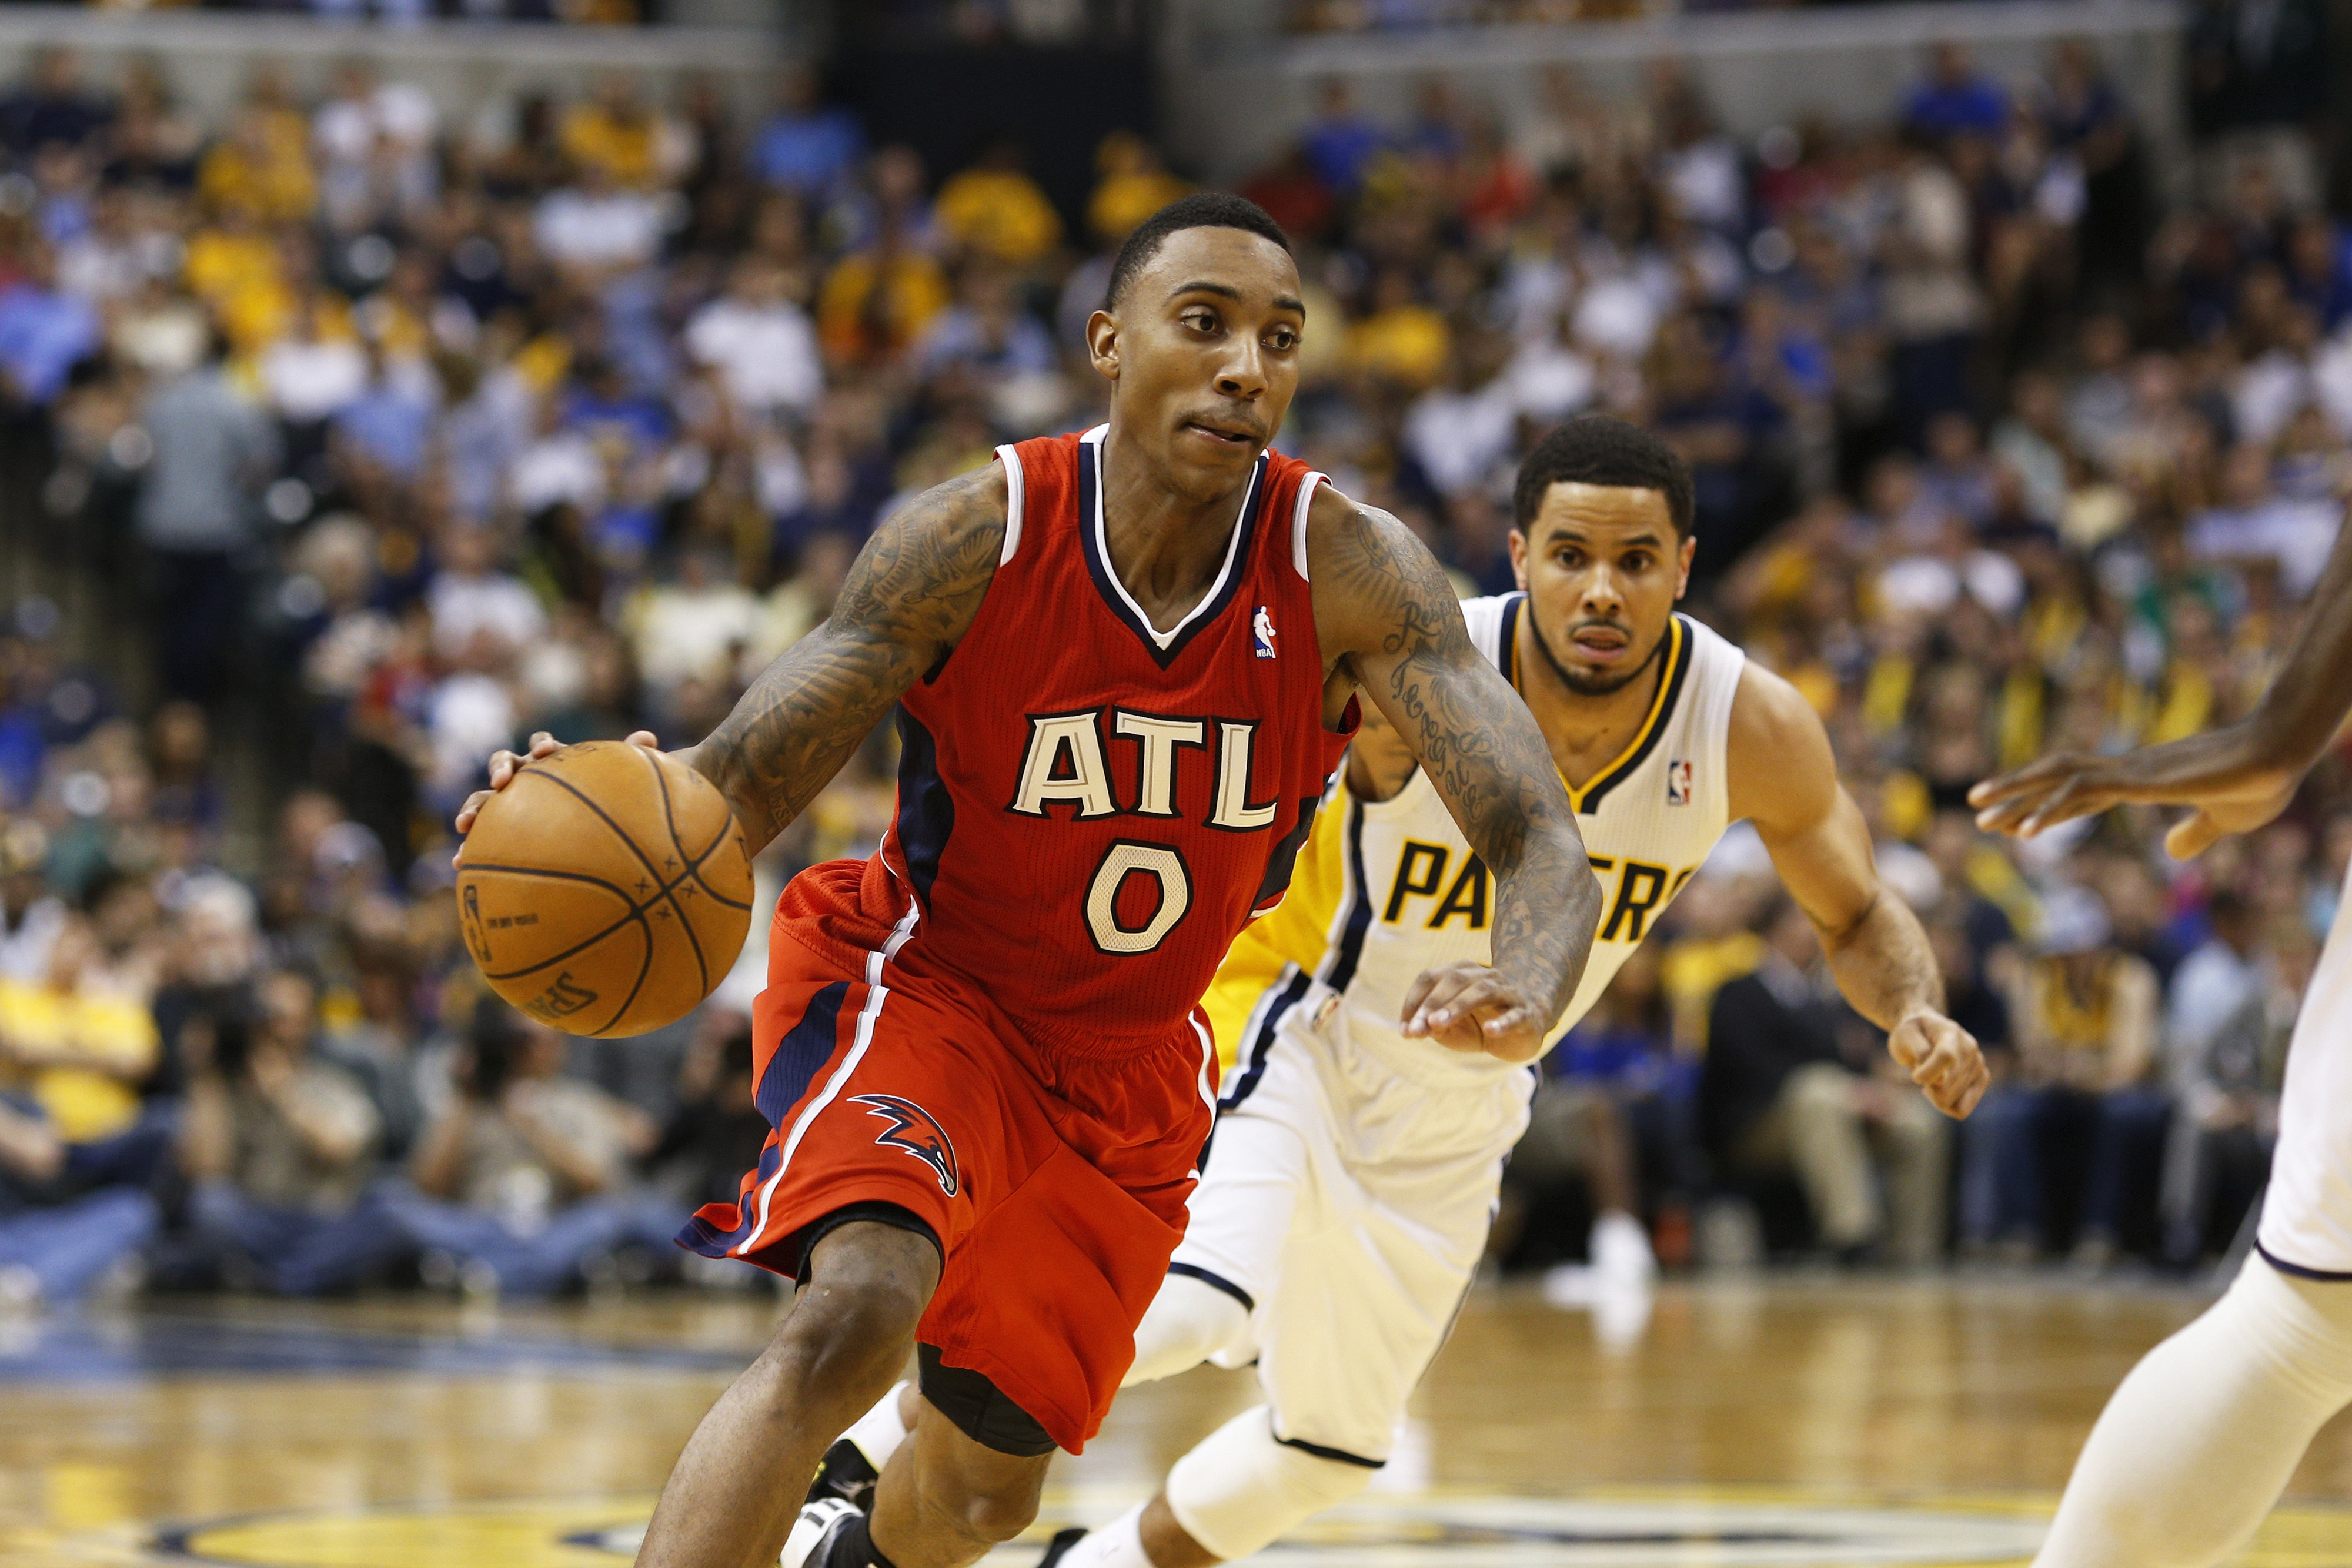 NBA free agency rumors: Jeff Teague reportedly frustrated with Hawks over lack of contract talks